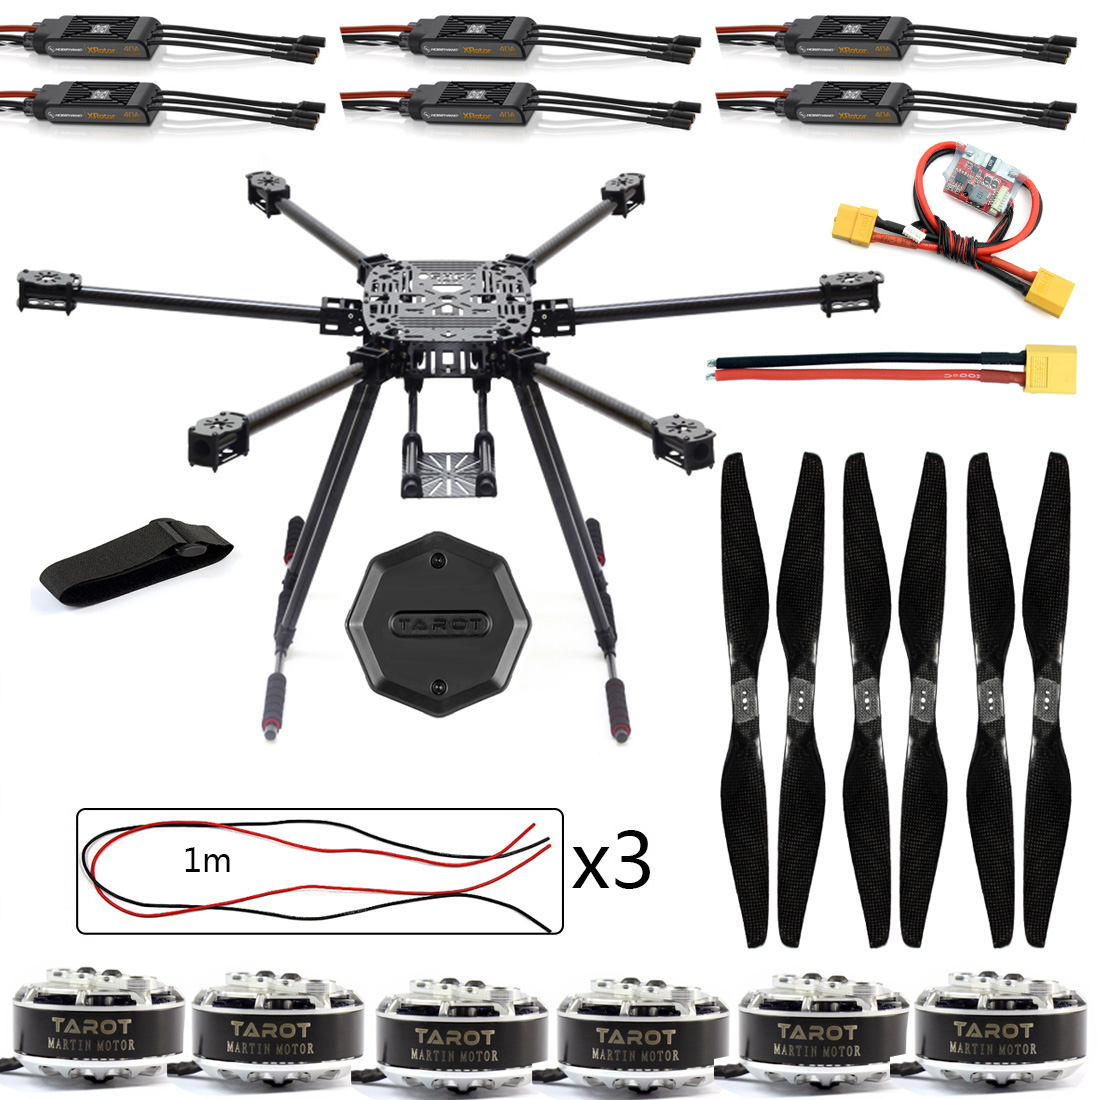 DIY ZD850 Frame Kit with Landing Gear 620KV Motor 40A Brushless ESC Propellers XT60 Plug +Hub for RC 6-axle Hexacopter F19833-A zd850 full carbon fiber frame kit with unflodable landing gear foldable arm 6 axle hub set for diy fpv aircraft hexacopter